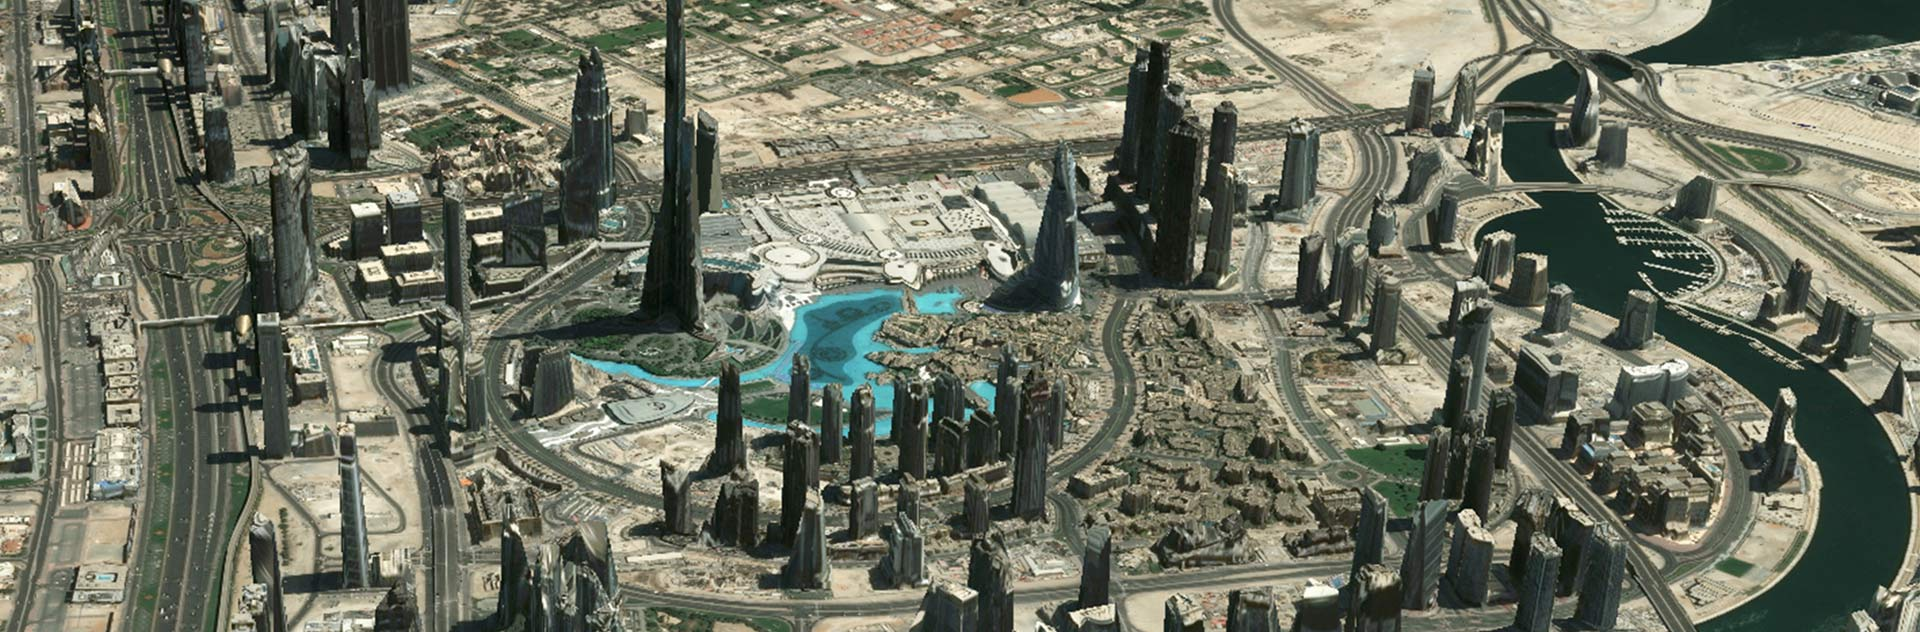 Dubai, one of the most populous cities in the United Arab Emirates, visualised with the help of 3D Textured Model.